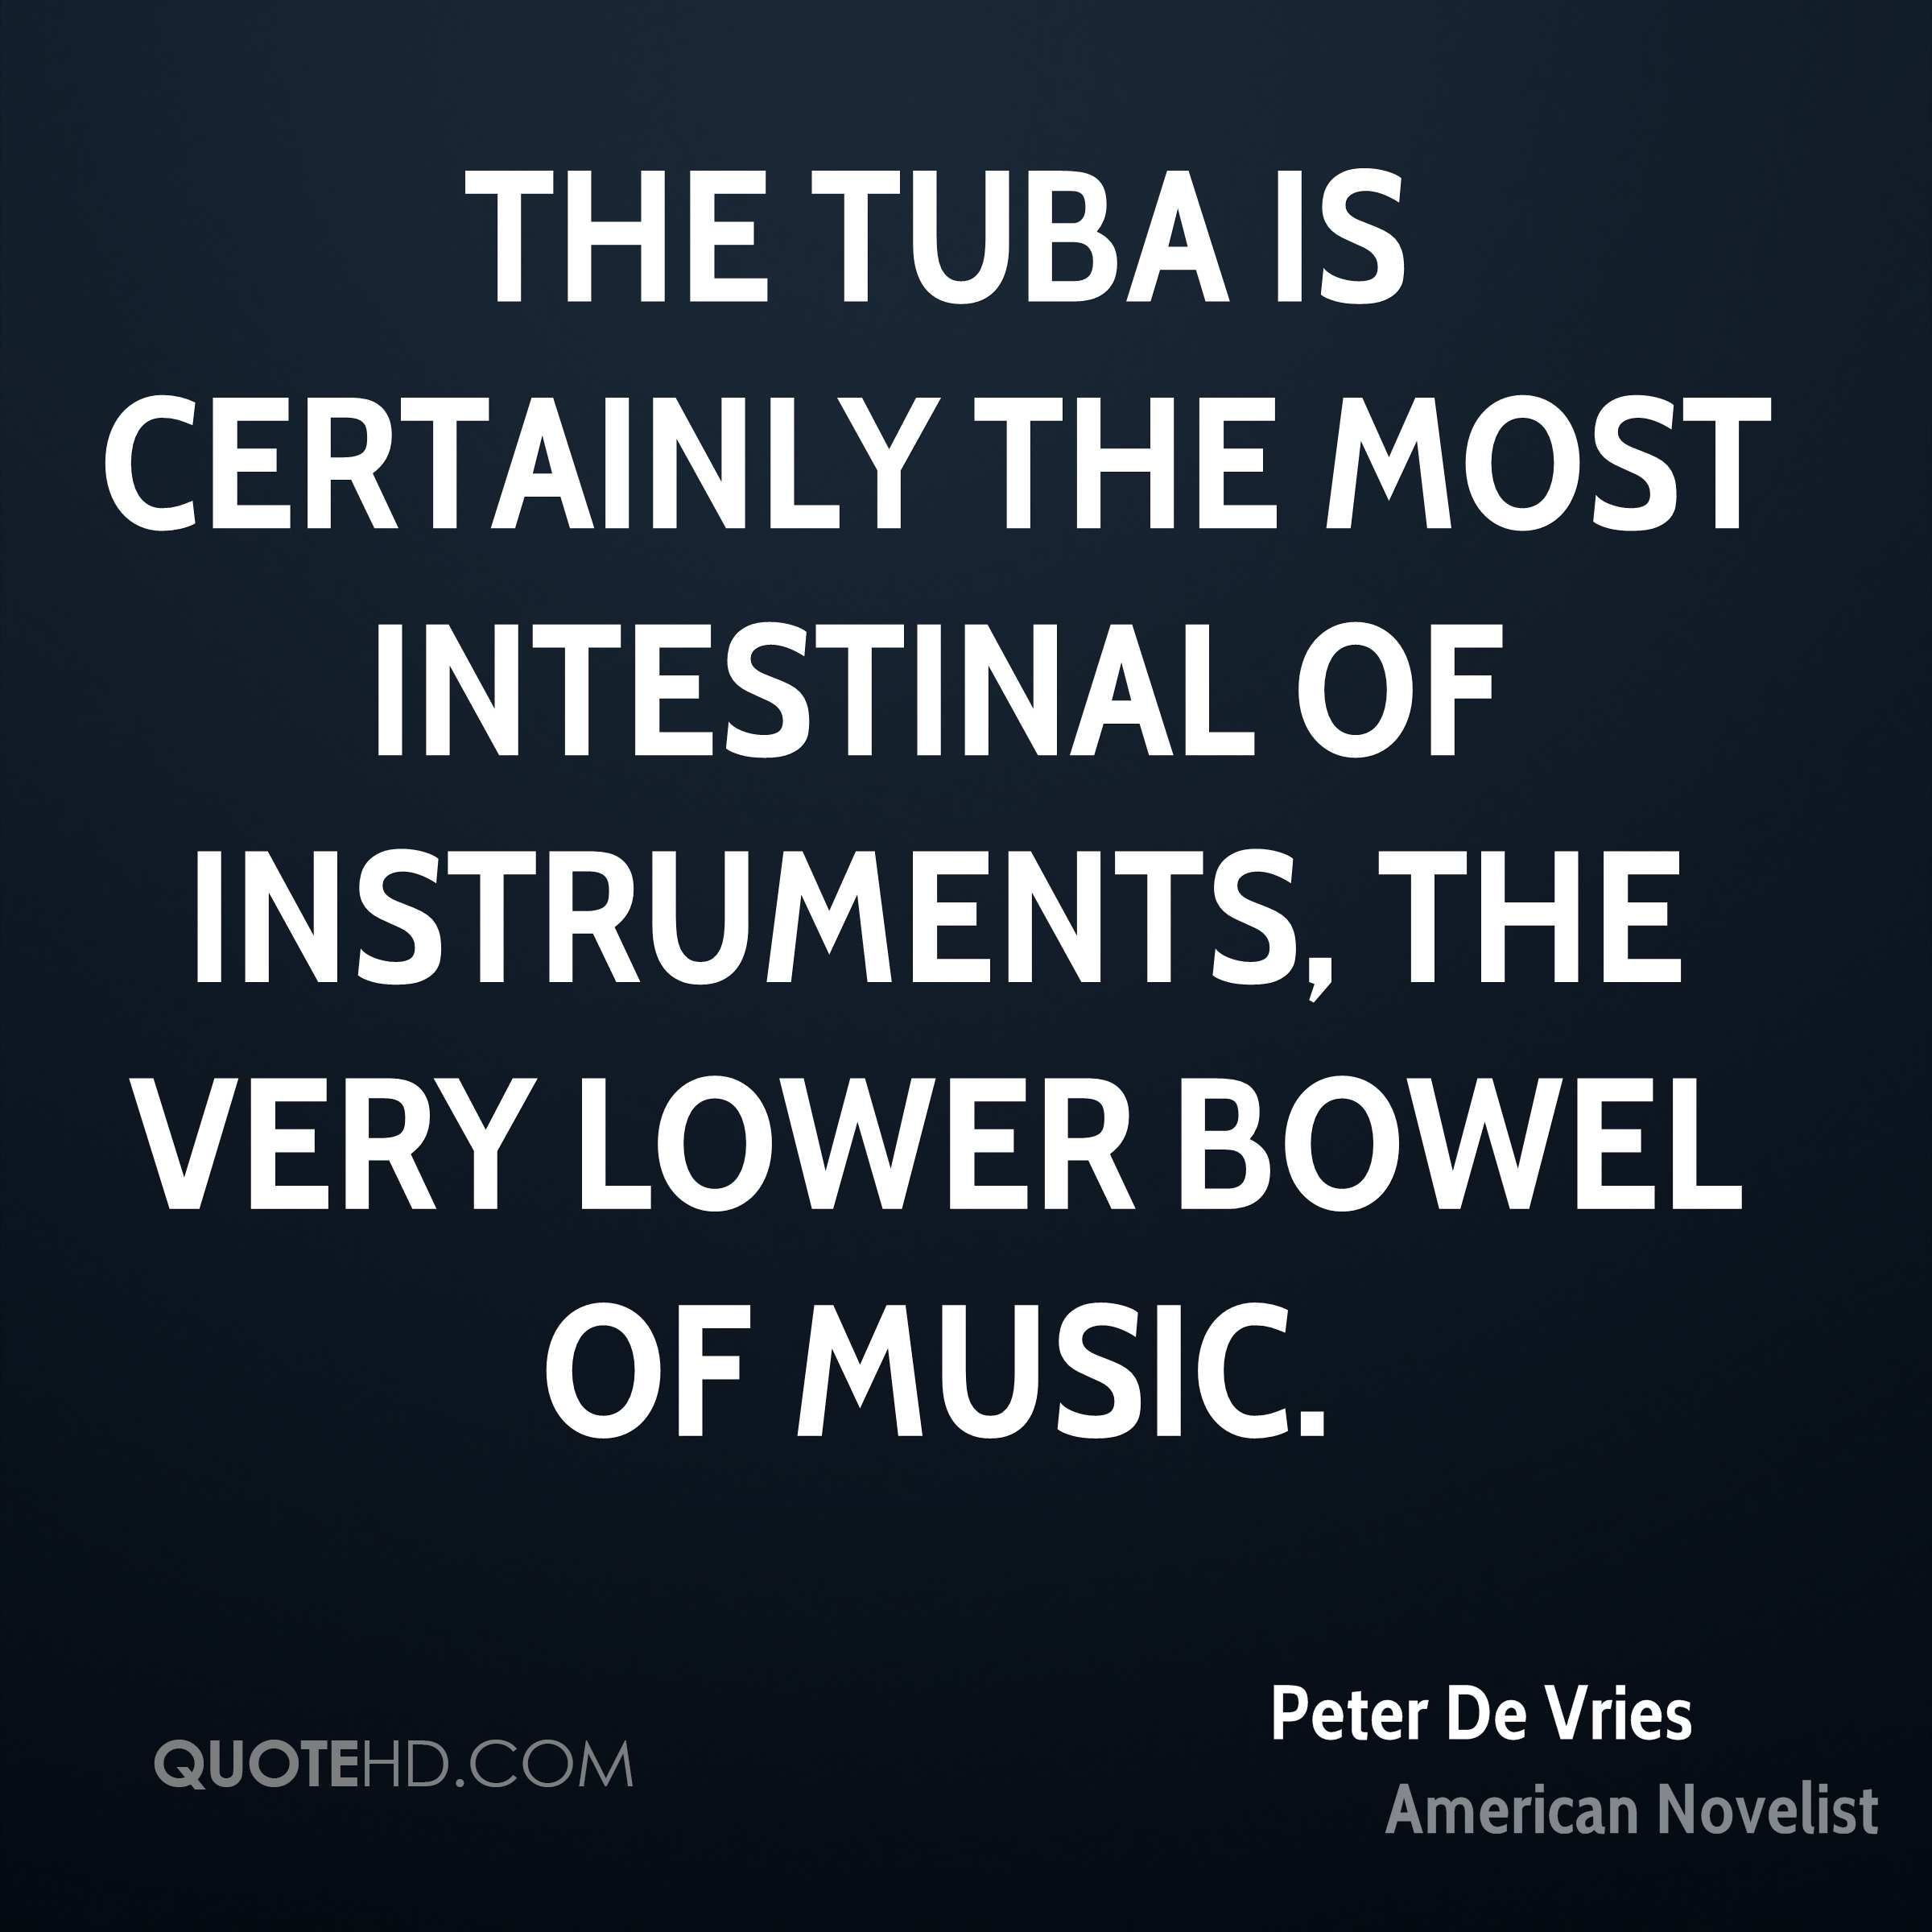 Peter de vries quotes quotehd the tuba is certainly the most intestinal of instruments the very lower bowel of music sciox Images